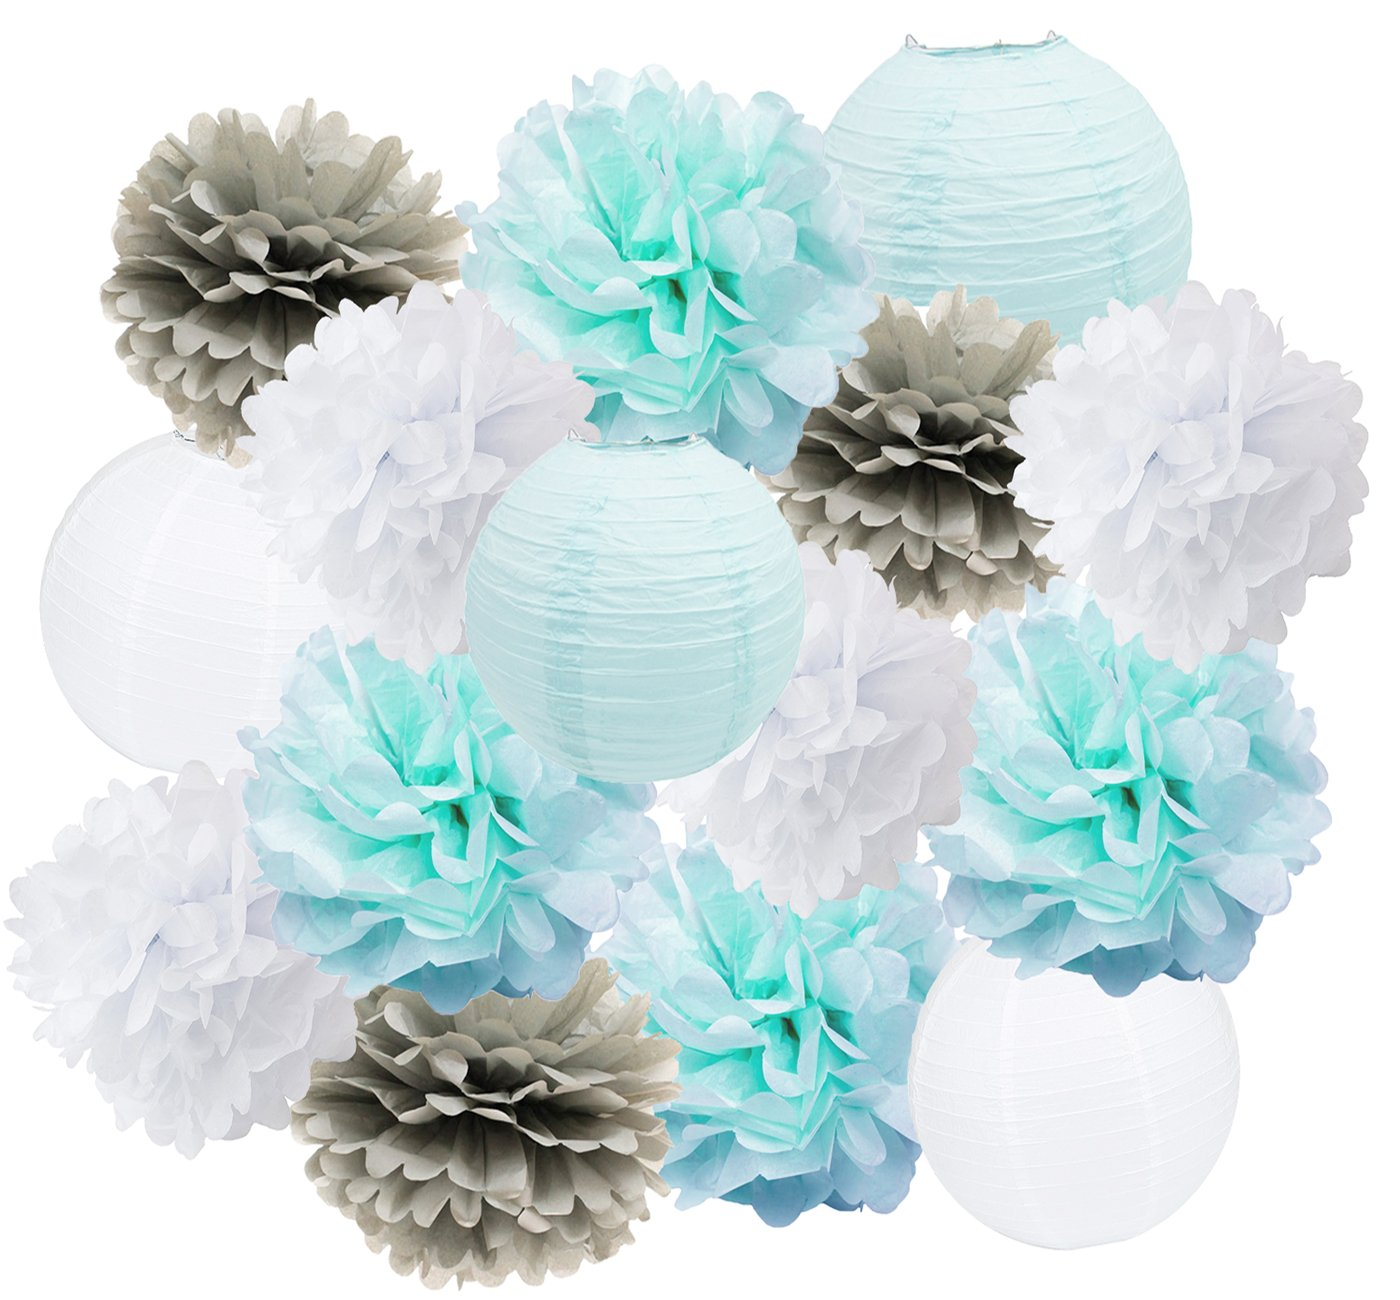 Frozen Themed Party Paper Decorations Hanging Bridal Shower Decorations Baby Boy Birthday Party Supplies Baby Shower Decorations Furuix 16 pcs White Blue Grey 10inch 8inch Tissue Paper Pom Poms Paper Lanterns Mixed Package